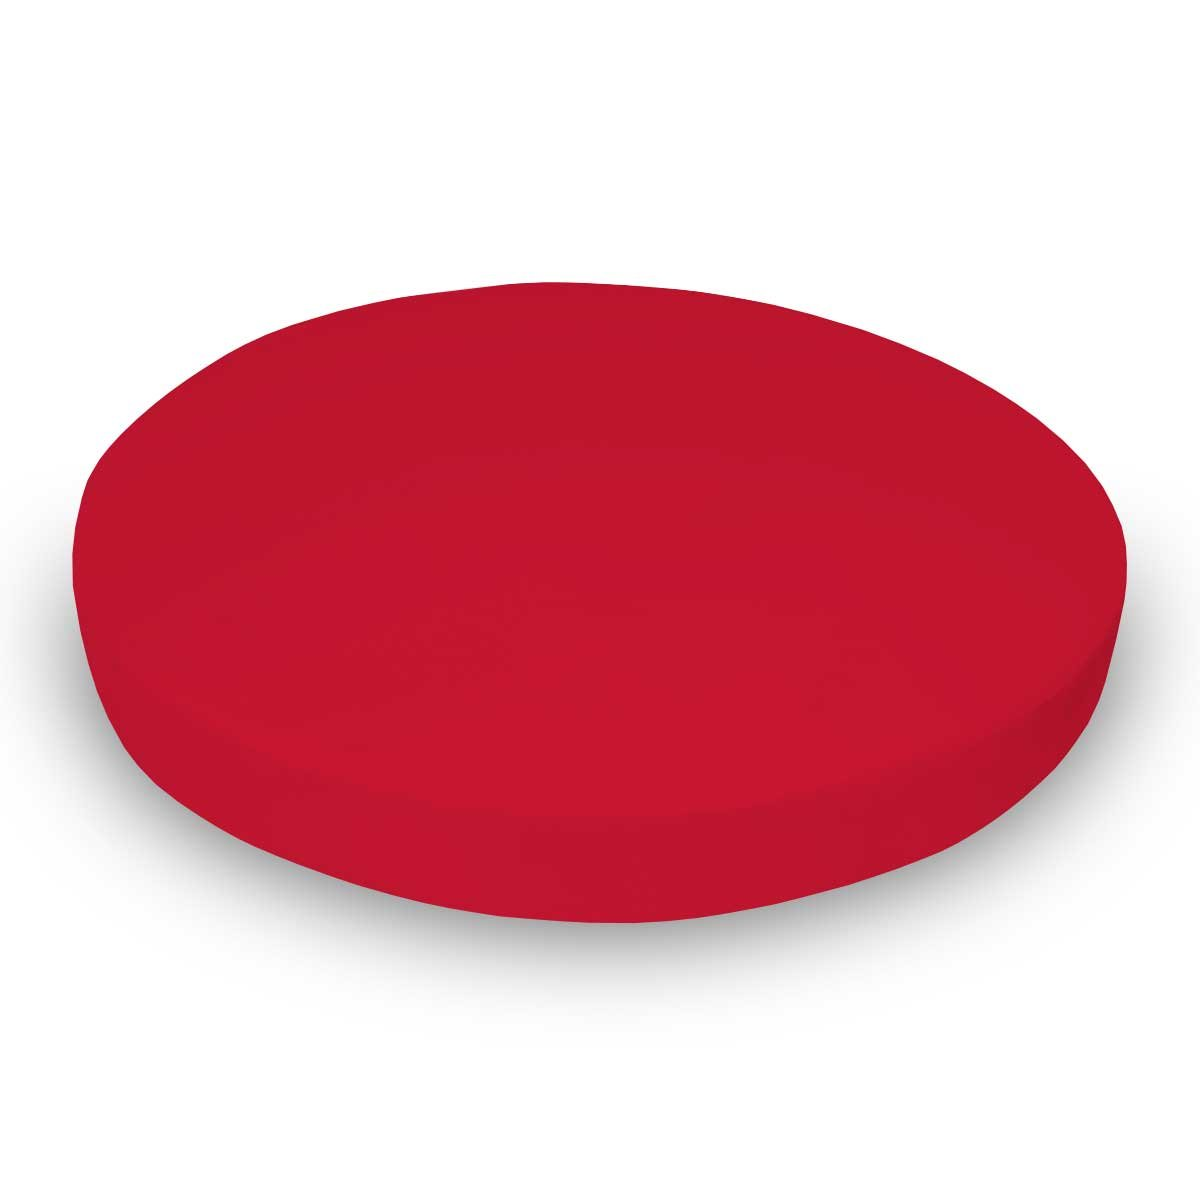 SheetWorld 100% Cotton Jersey Round Crib Sheet, Solid Red, 42 x 42, Made In USA